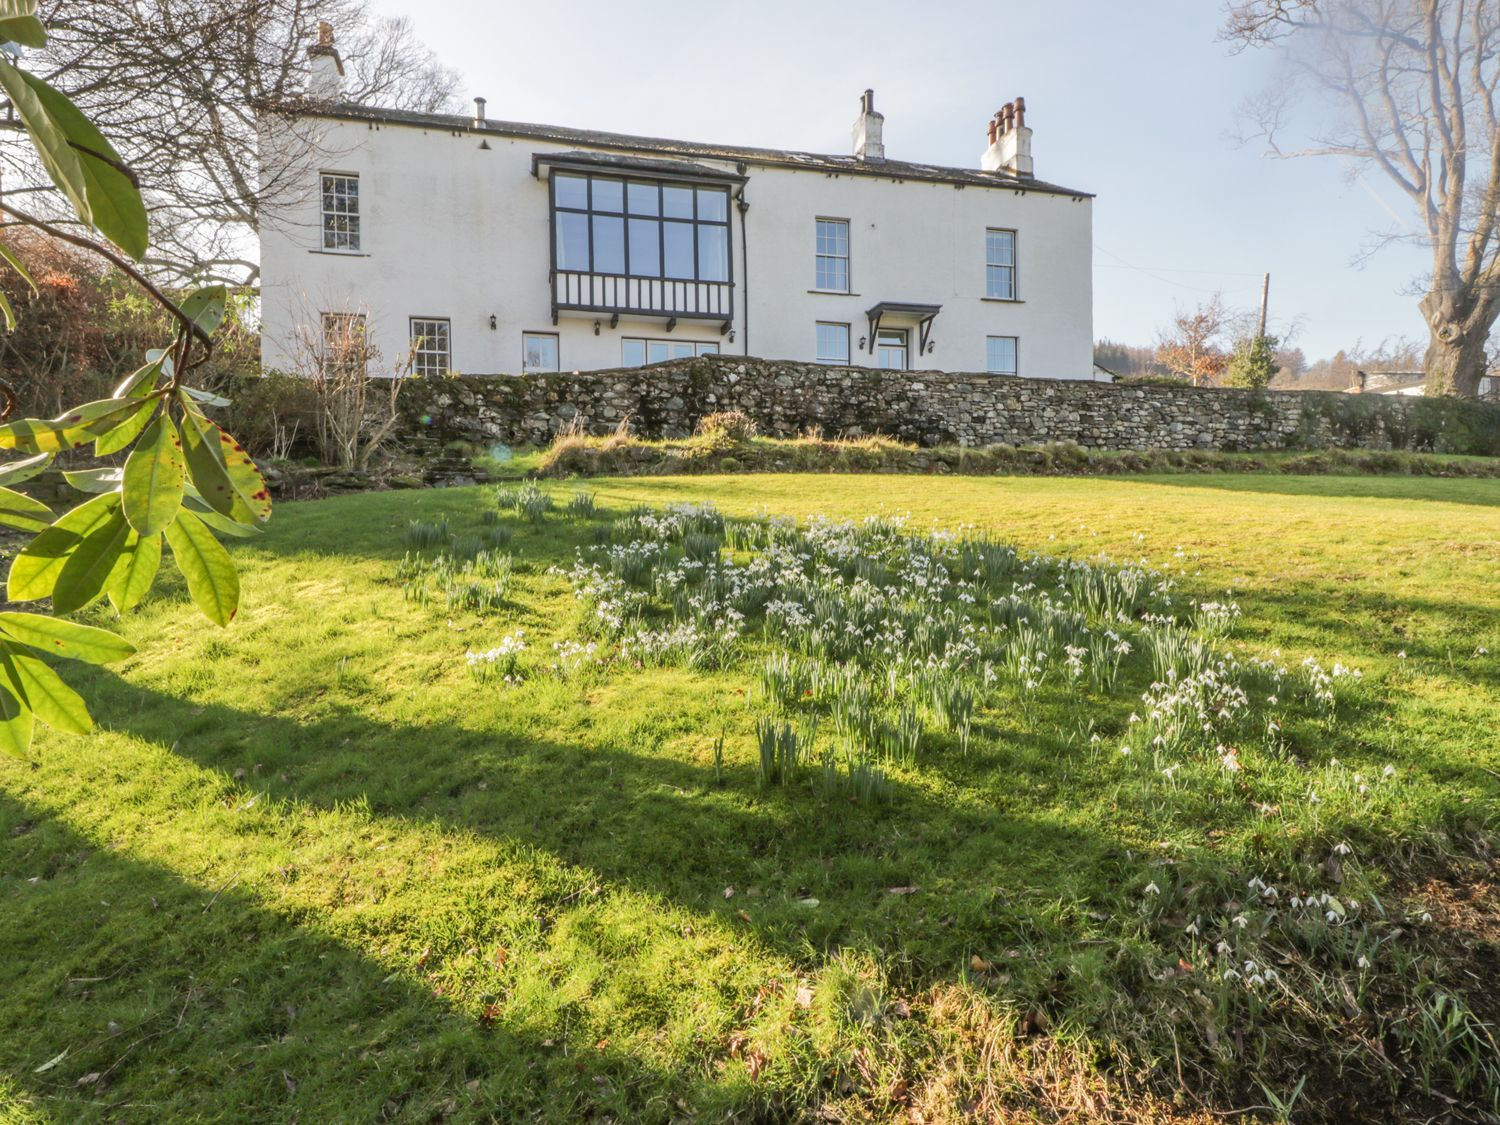 Lake District Holiday Cottage with large green garden out the front - rural countryside area